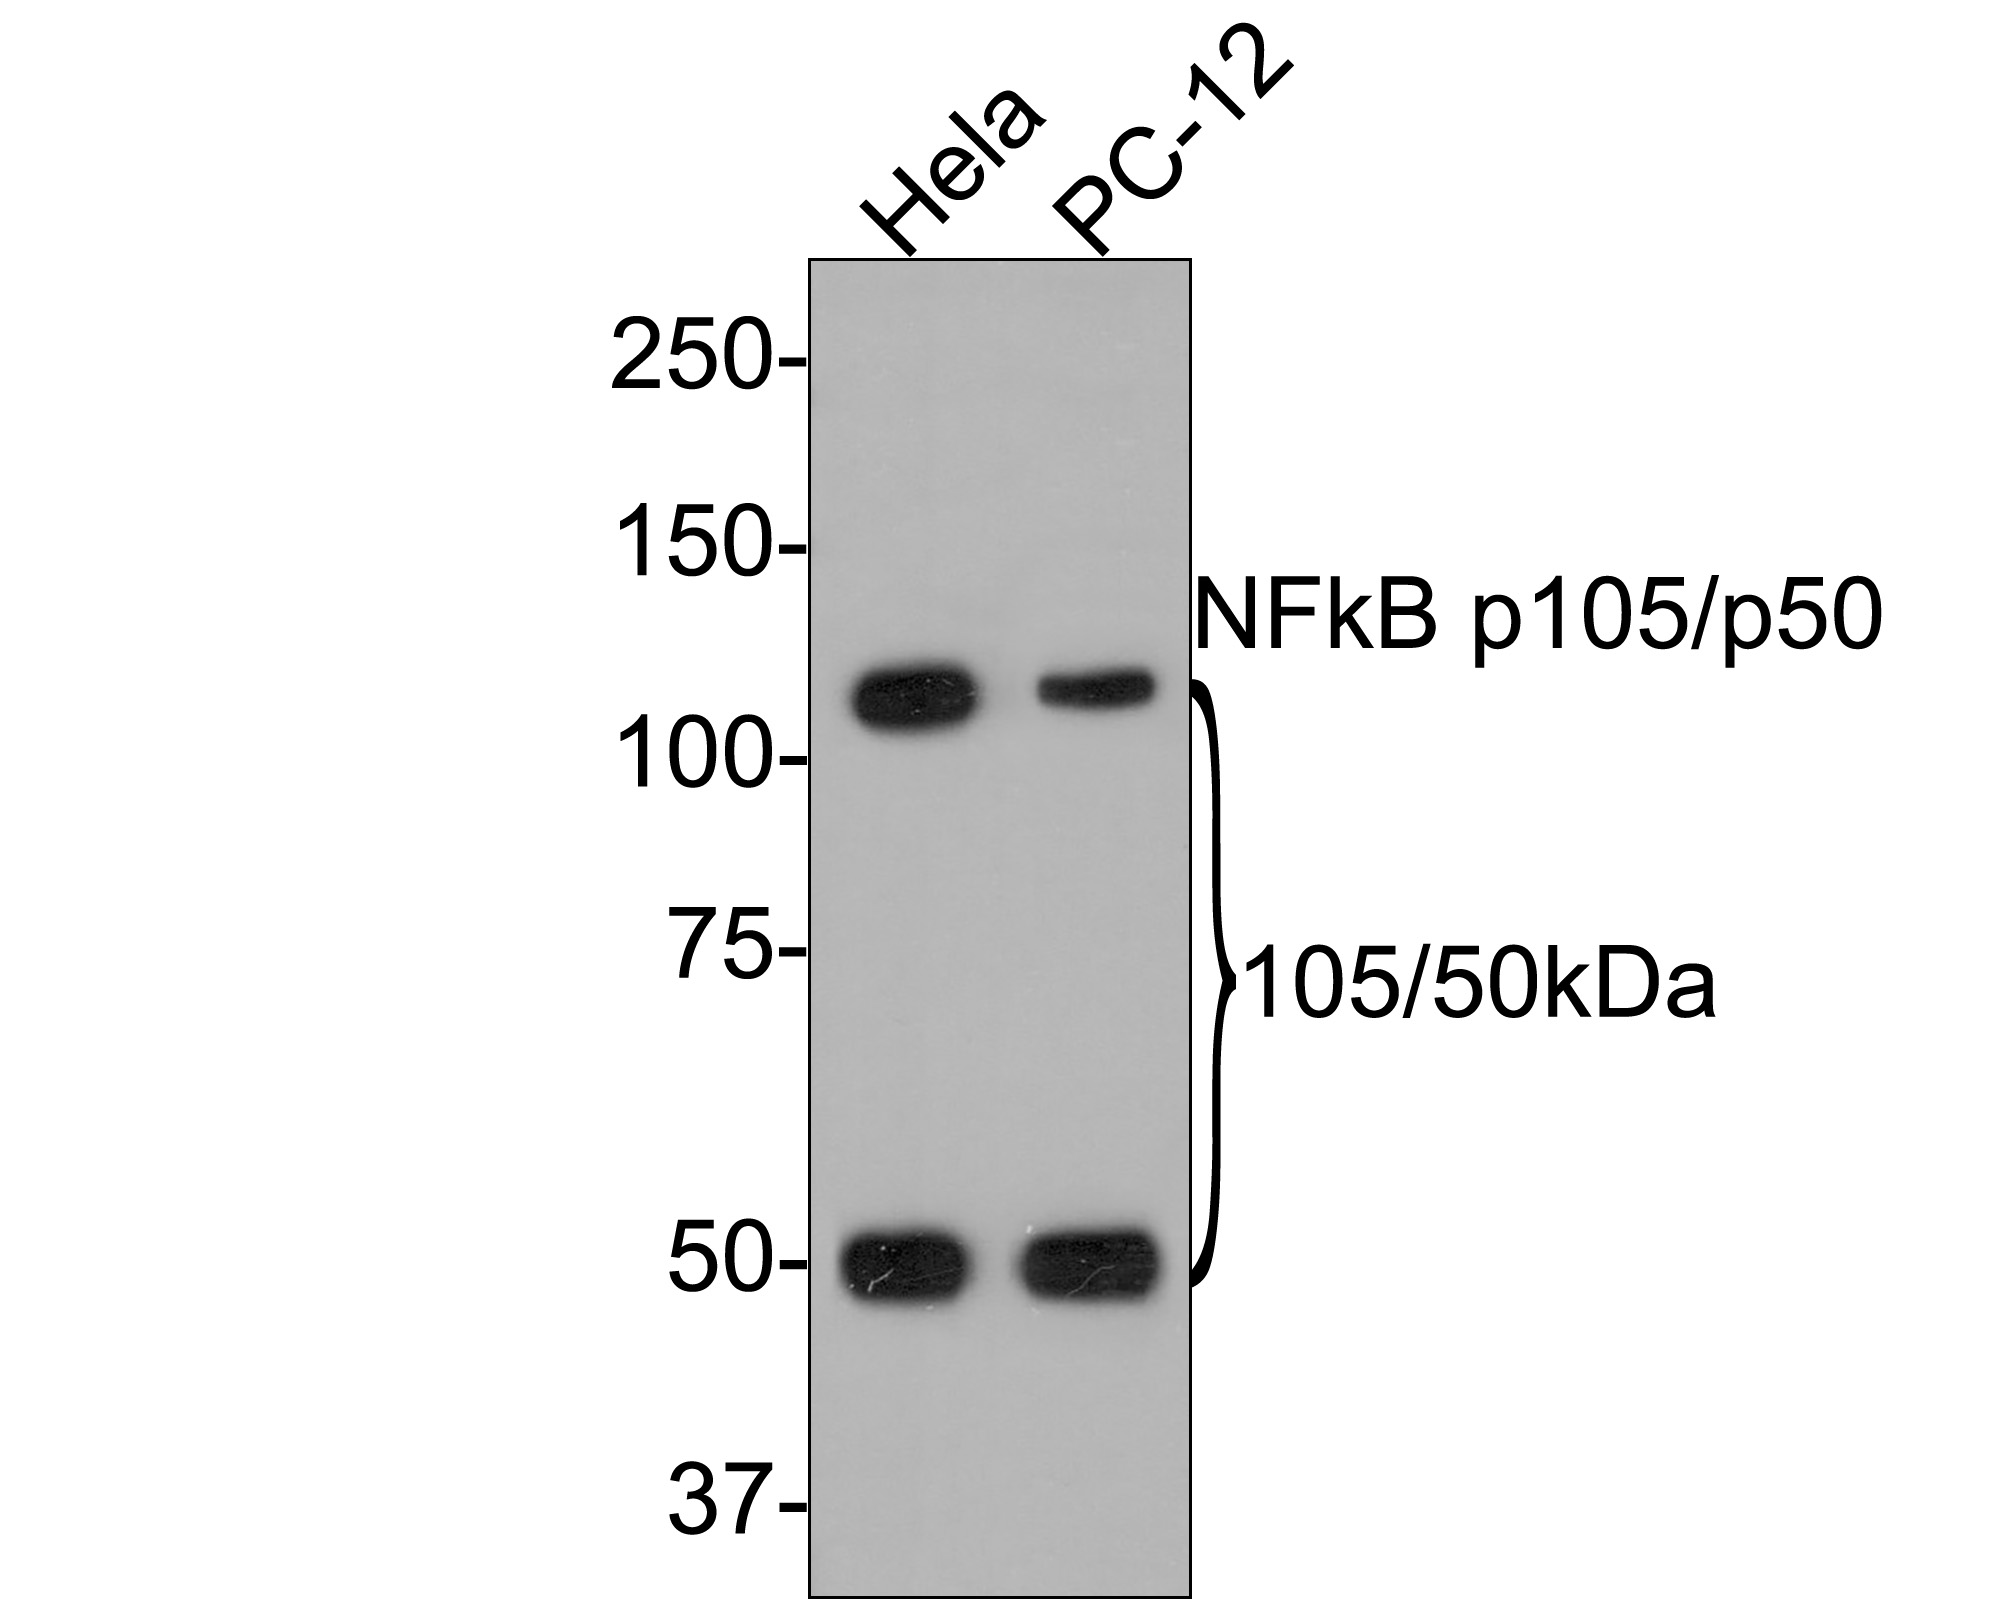 Western blot analysis of NFkB p105/p50 on different lysates. Proteins were transferred to a PVDF membrane and blocked with 5% BSA in PBS for 1 hour at room temperature. The primary antibody (ET1603-18, 1/500) was used in 5% BSA at room temperature for 2 hours. Goat Anti-Rabbit IgG - HRP Secondary Antibody (HA1001) at 1:5,000 dilution was used for 1 hour at room temperature.<br />  Positive control: <br />  Lane 1: Hela cell lysate<br />  Lane 2: PC-12 cell lysate